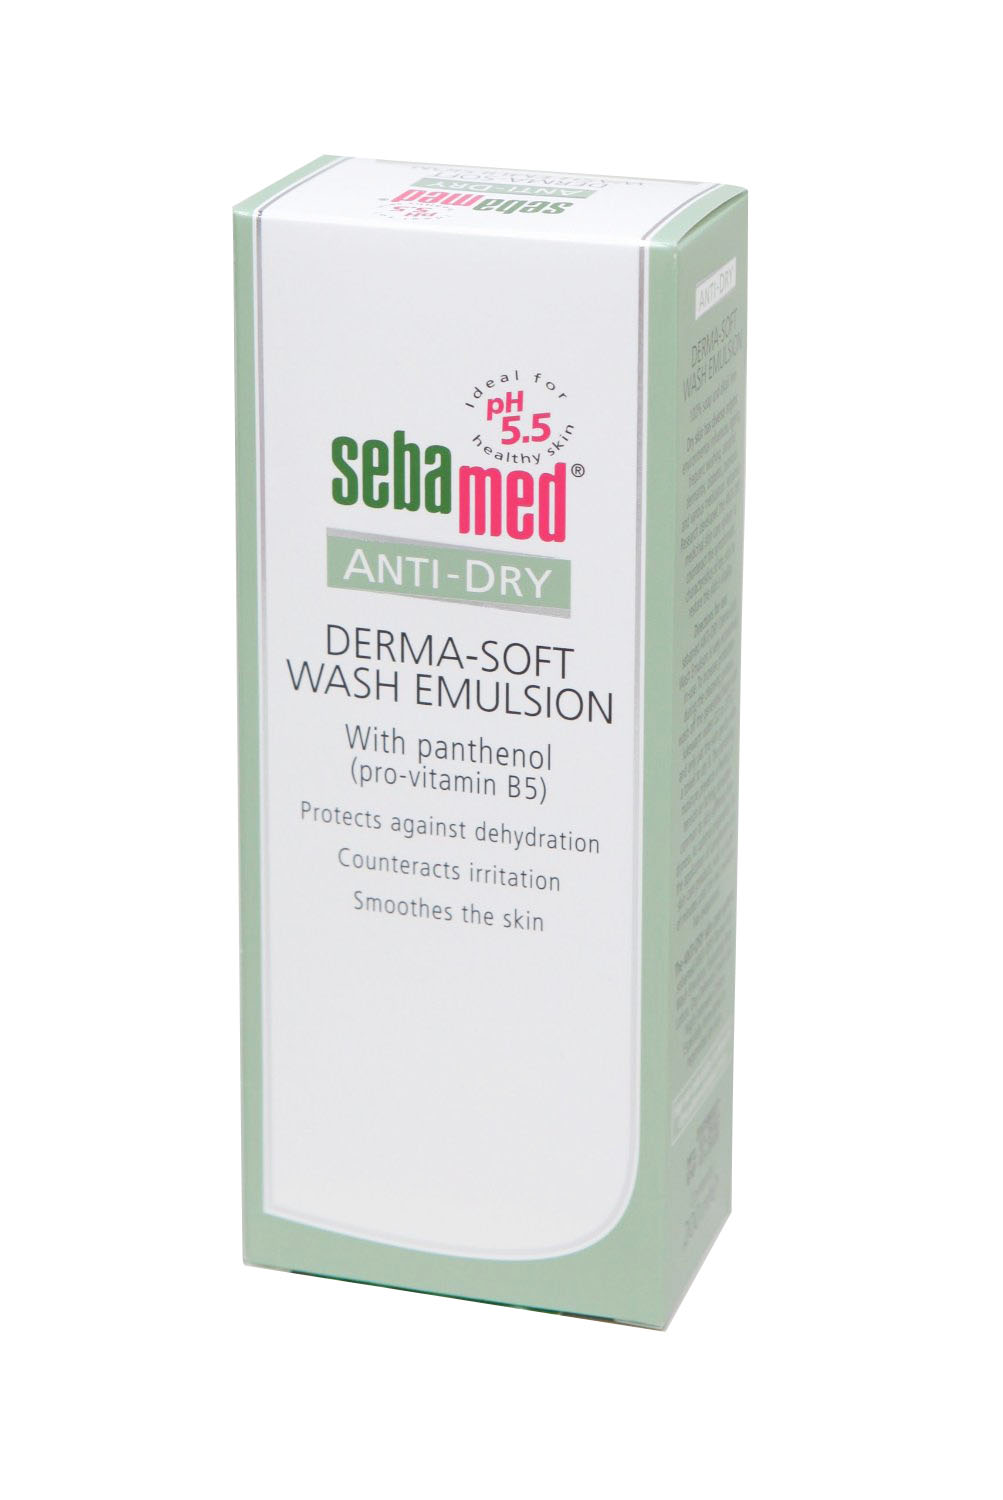 Sebamed Anti-Dry Derma Soft Wash Emulsion 1000 ml